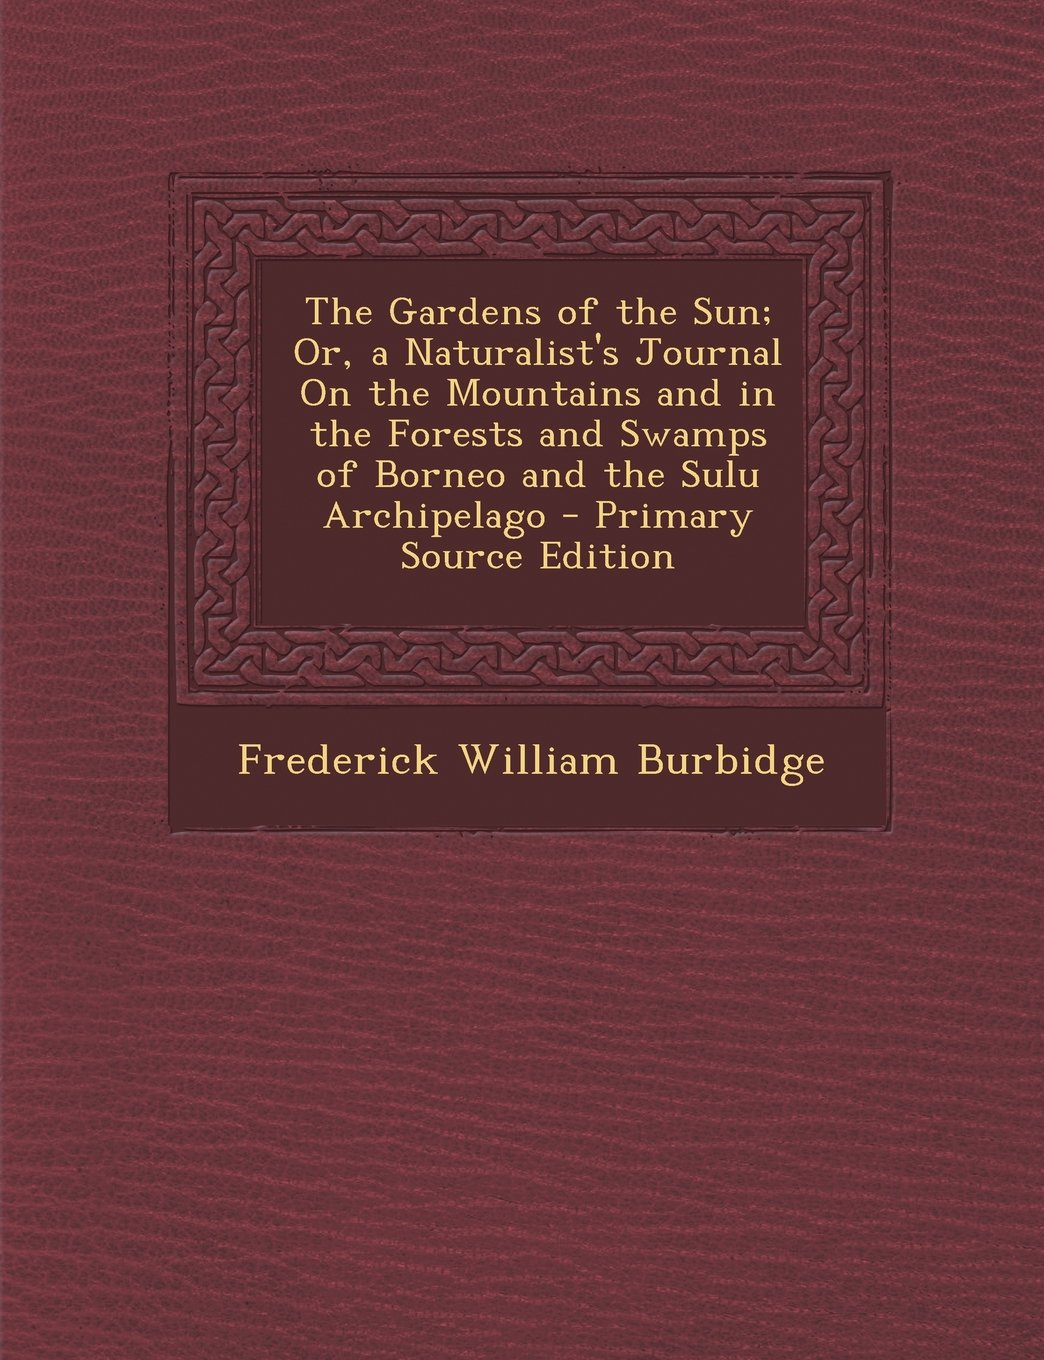 The Gardens of the Sun; Or, a Naturalist's Journal on the Mountains and in the Forests and Swamps of Borneo and the Sulu Archipelago - Primary Source pdf epub